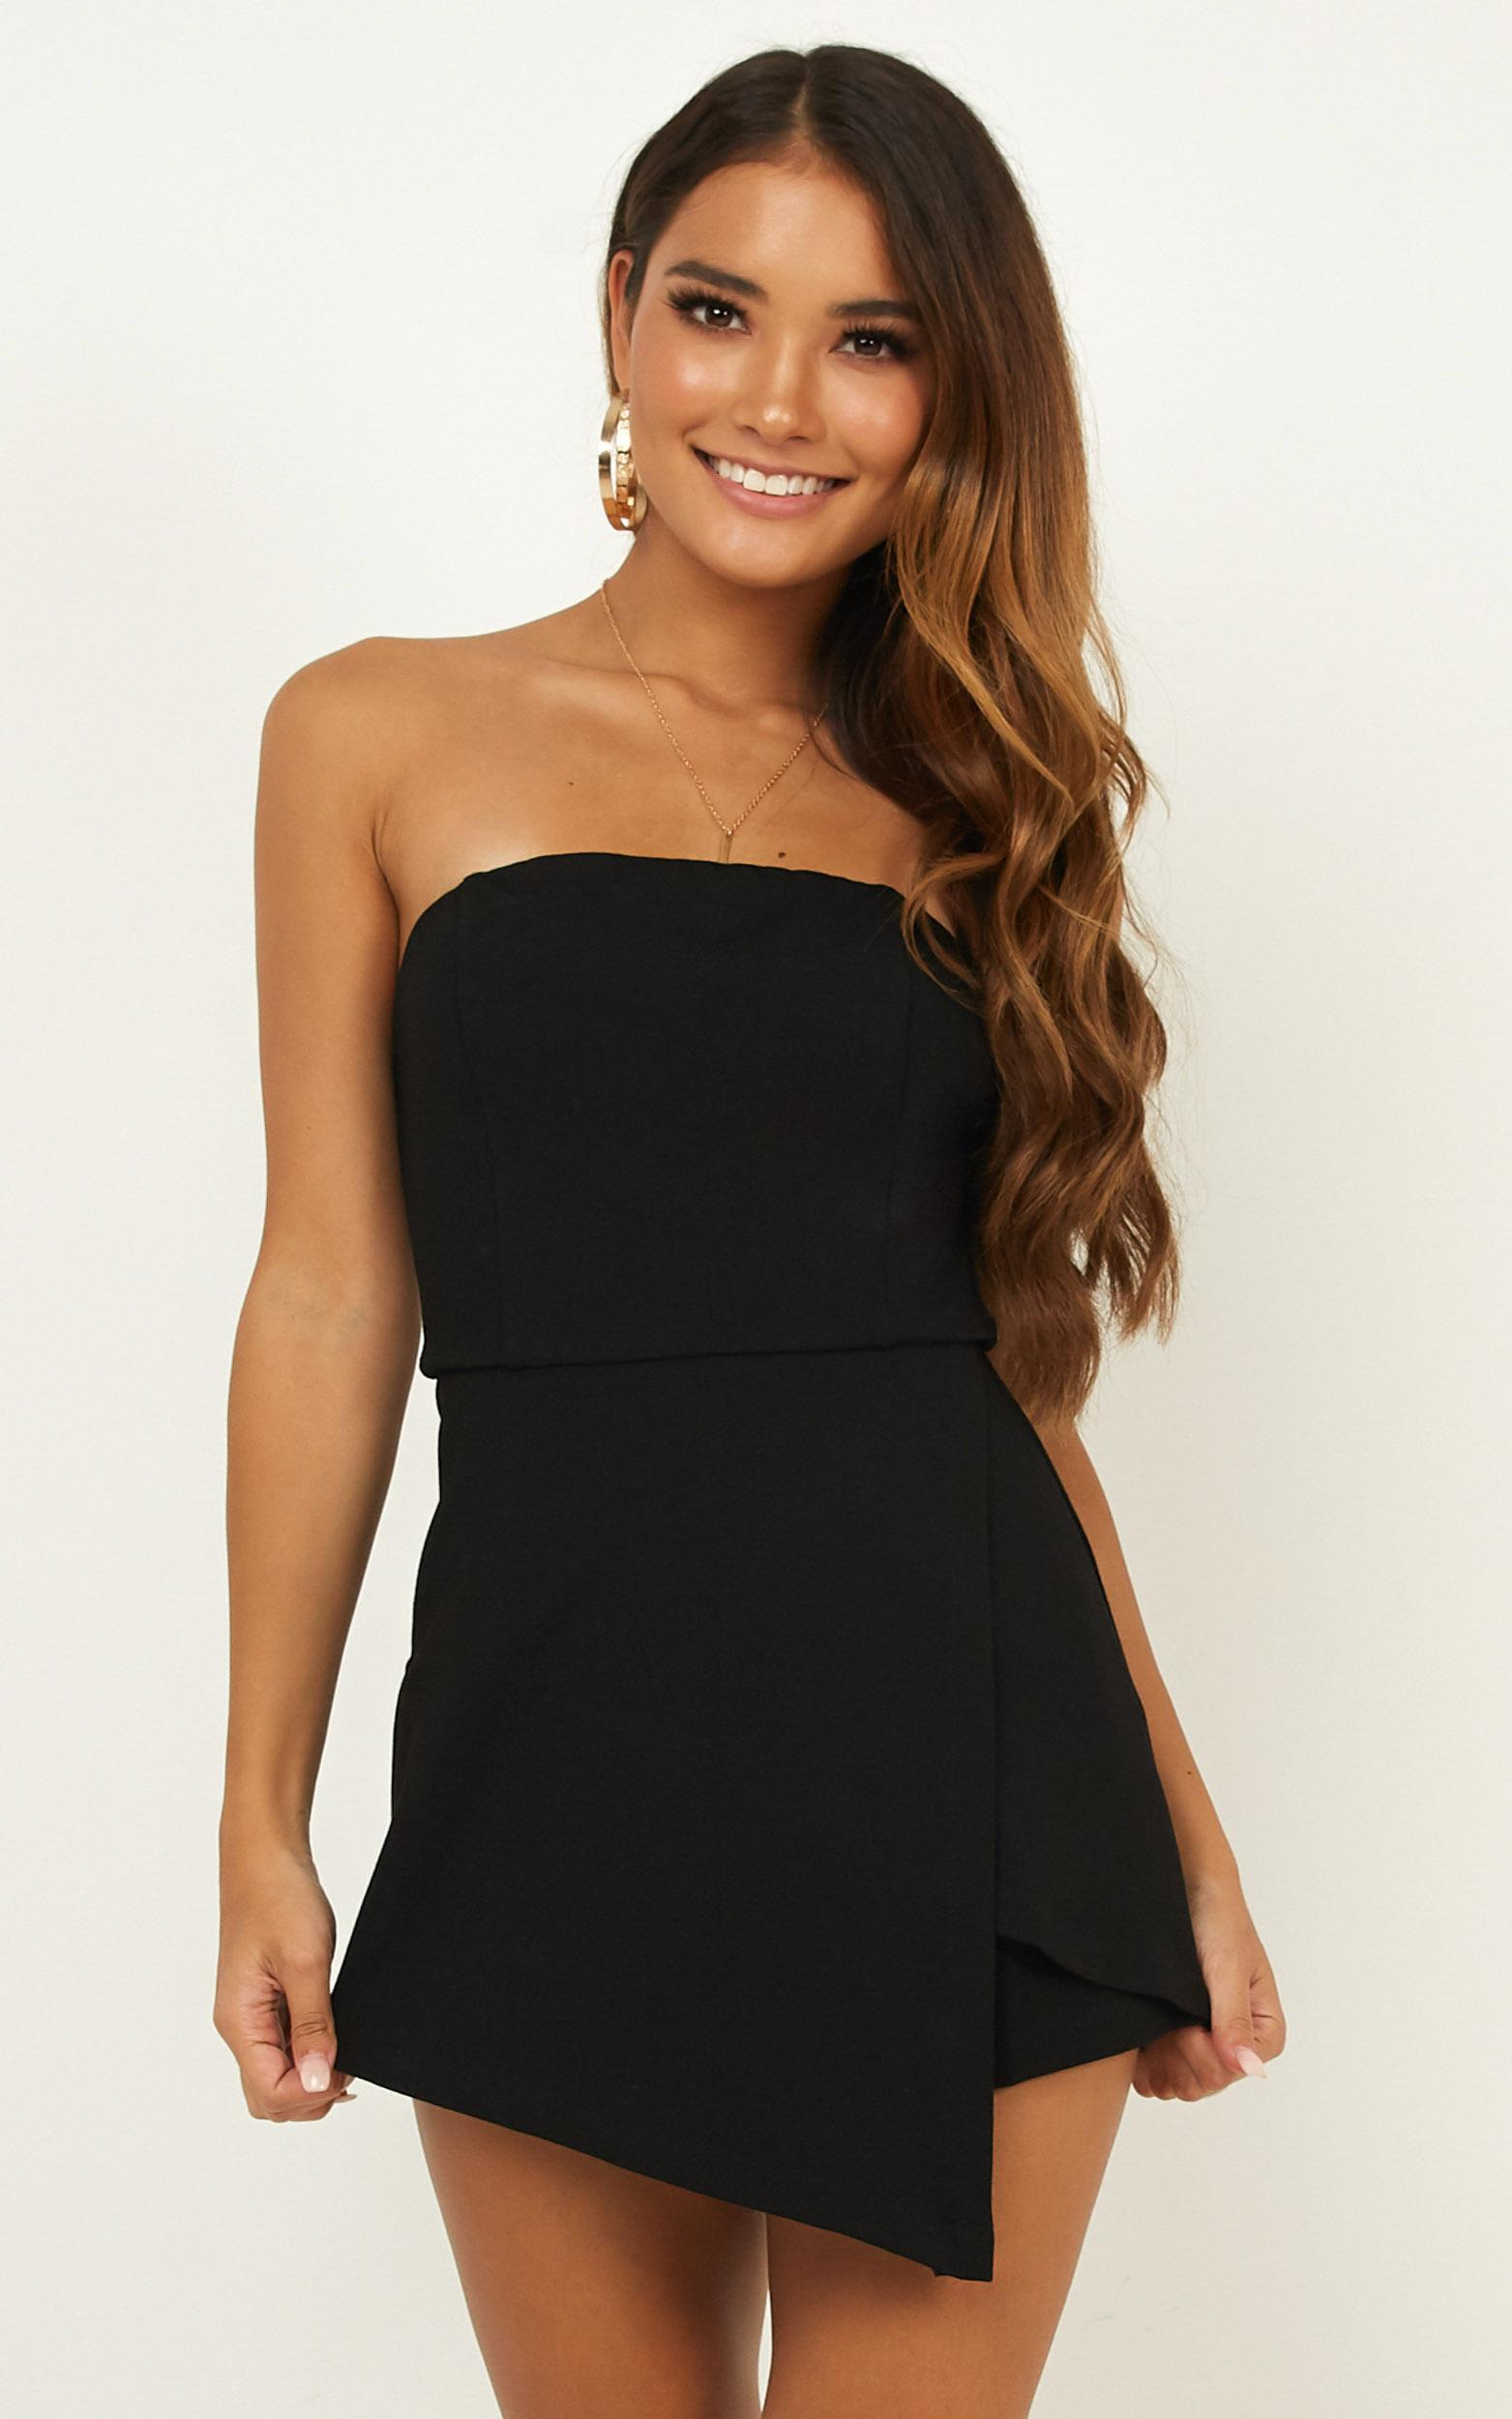 Caught My Eyes Playsuit in black - 6 (XS), BLK1, hi-res image number null